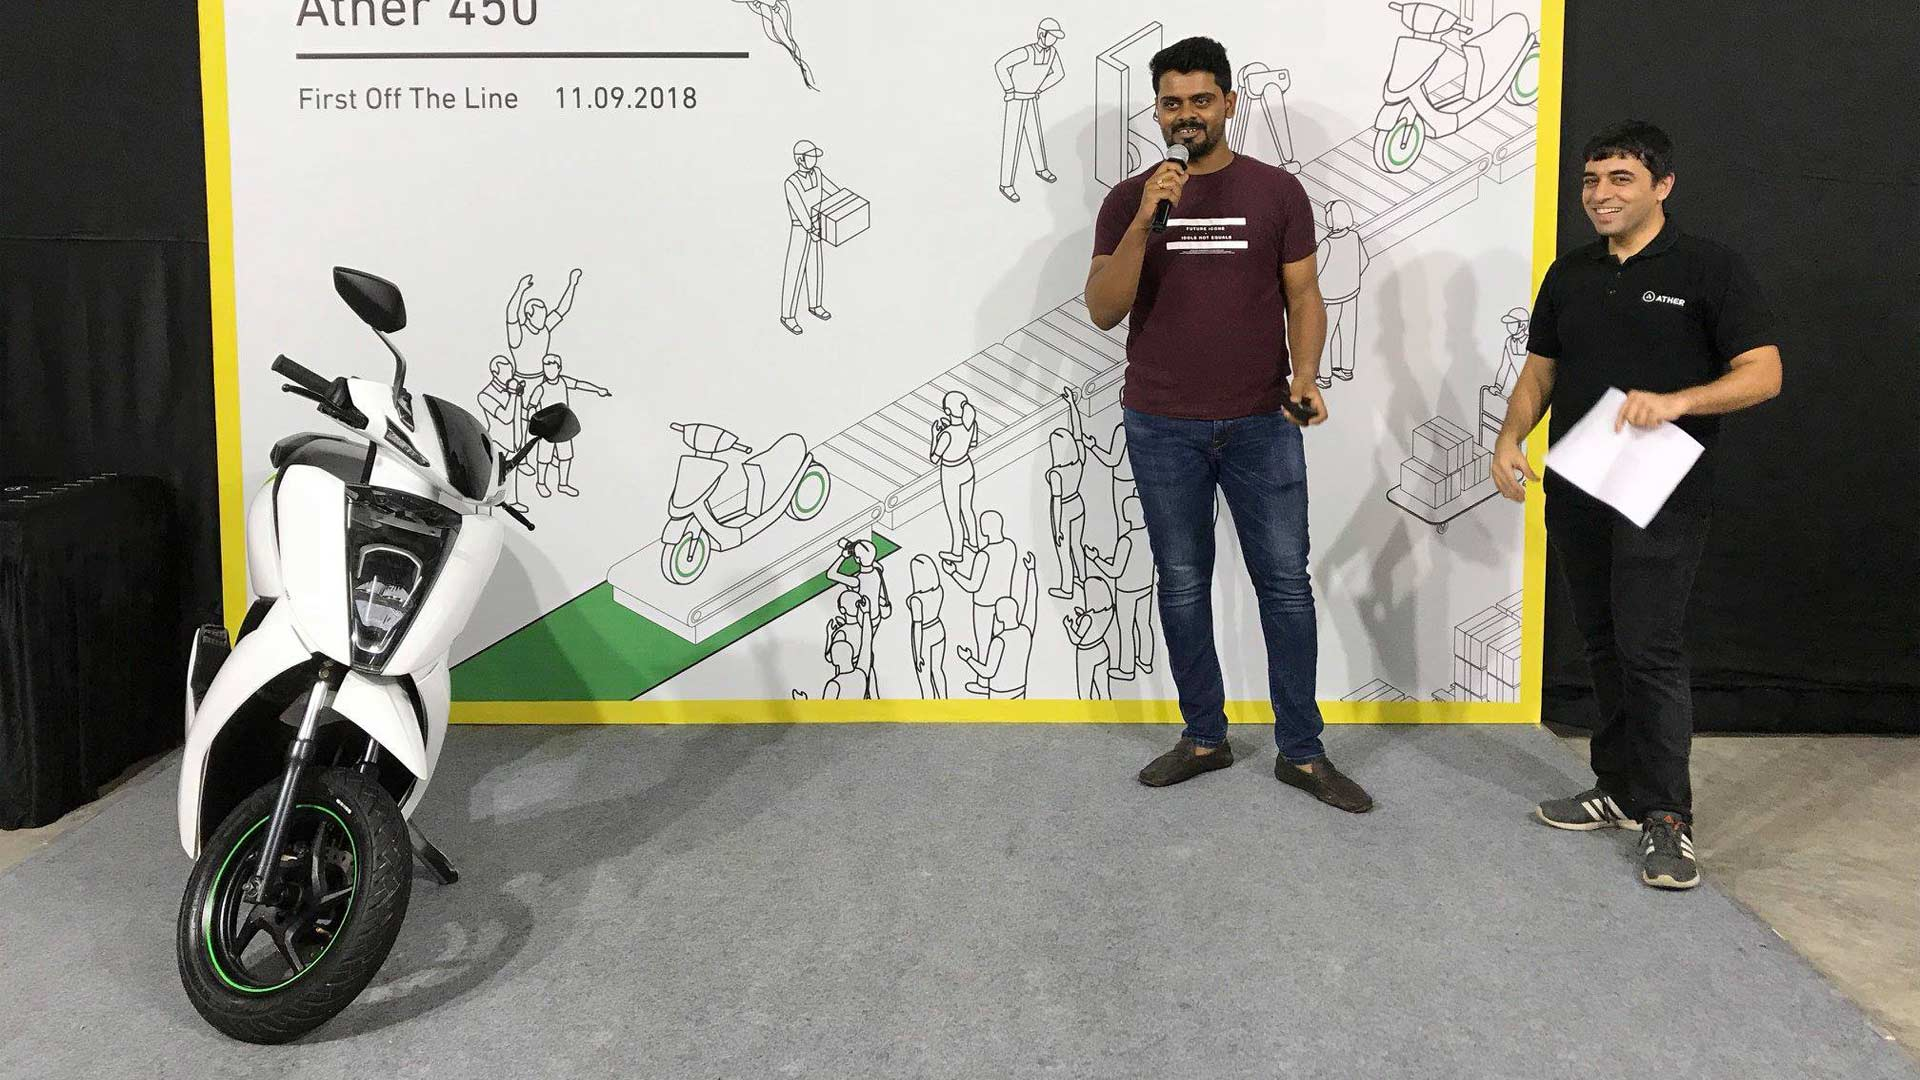 First-Ather-450-electric-scooters-delivery-Bengaluru